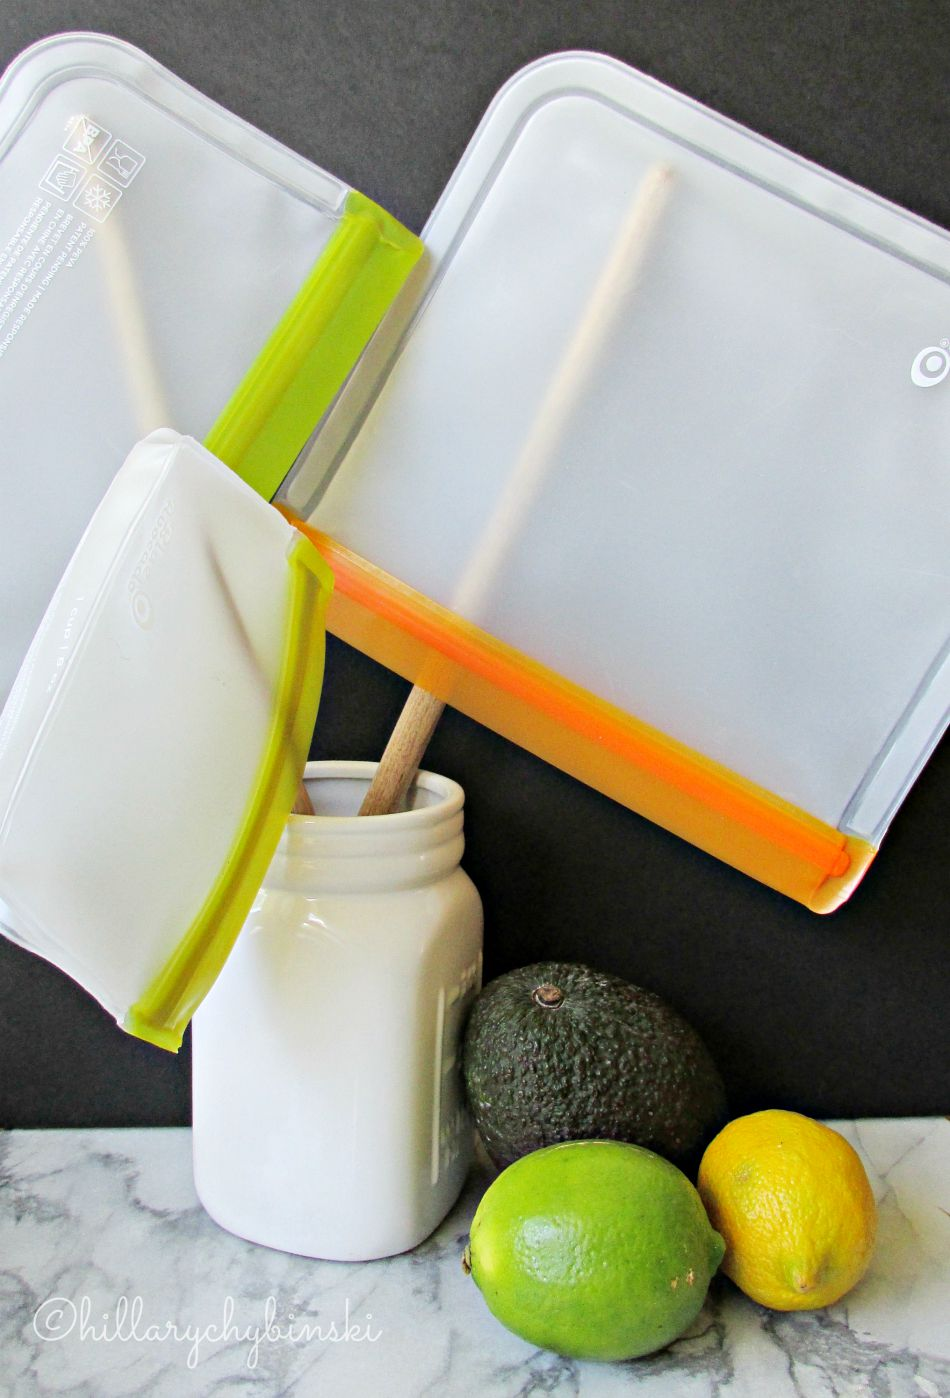 5 Easy Ways to Green Your Kids' Lunches